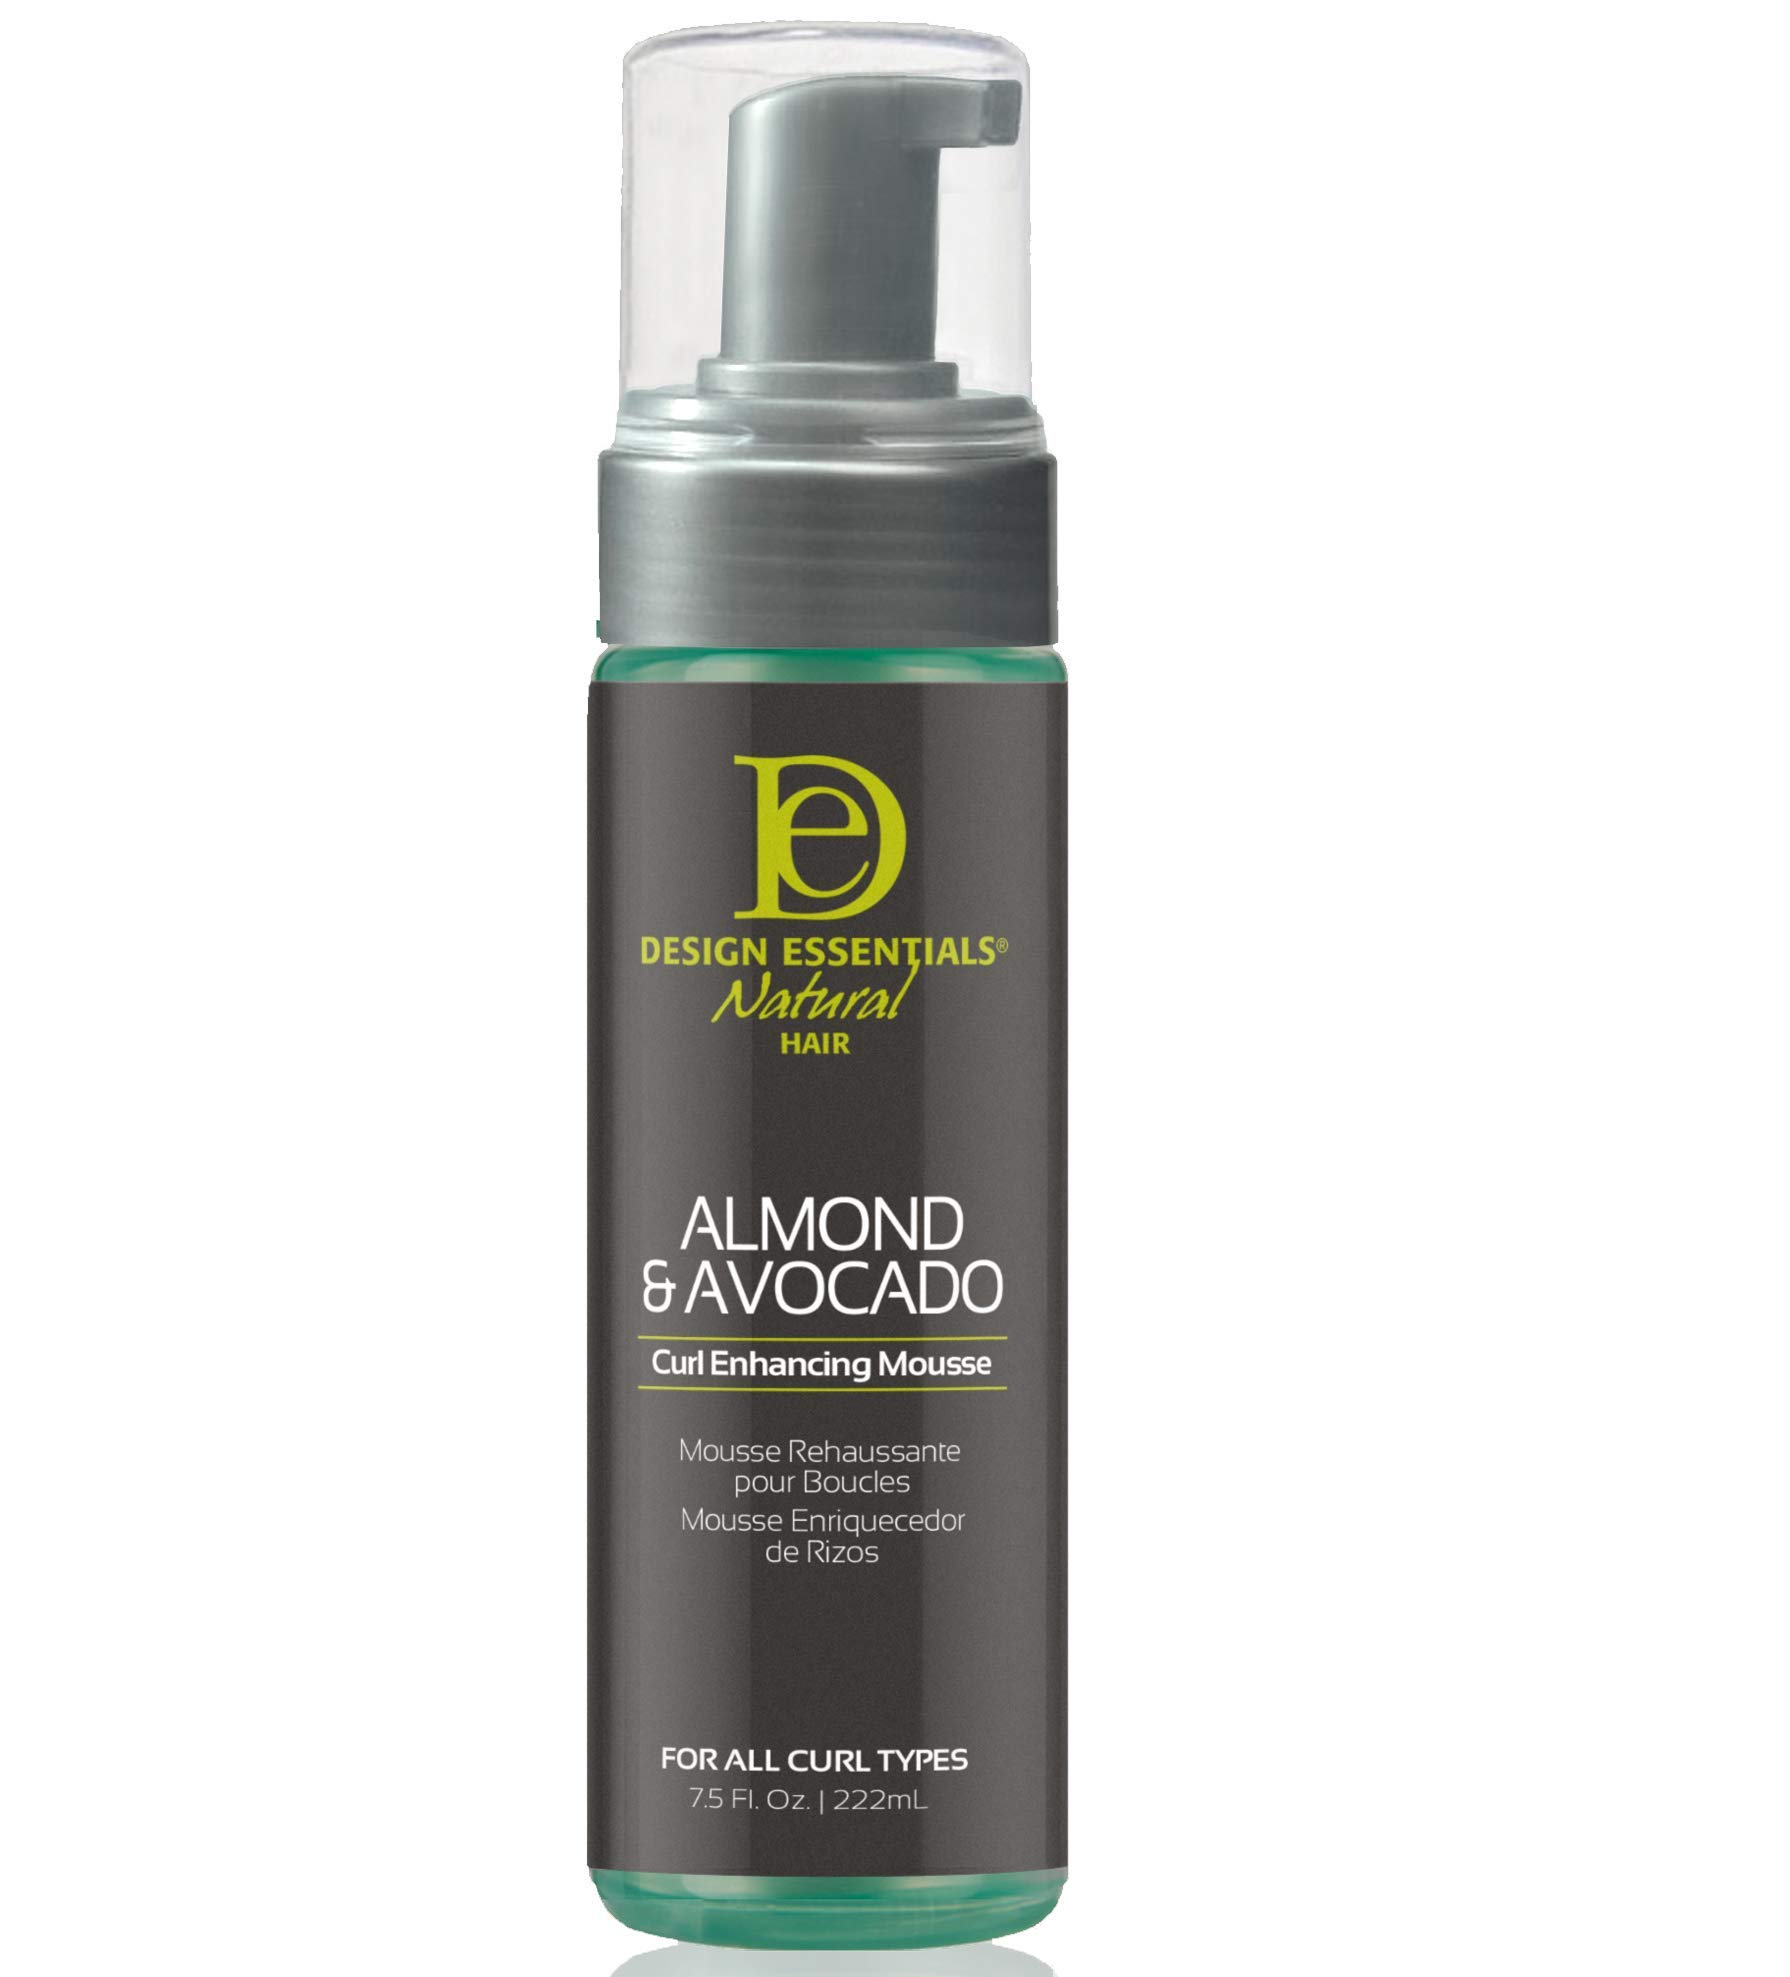 Design Essentials Natural Curl Enhancing Mousse, Quick Drying Must-Have for Perfectly Defined Luminous Curls-Almond & Avocado Collection, 7.5 Fl Oz by Design Essentials